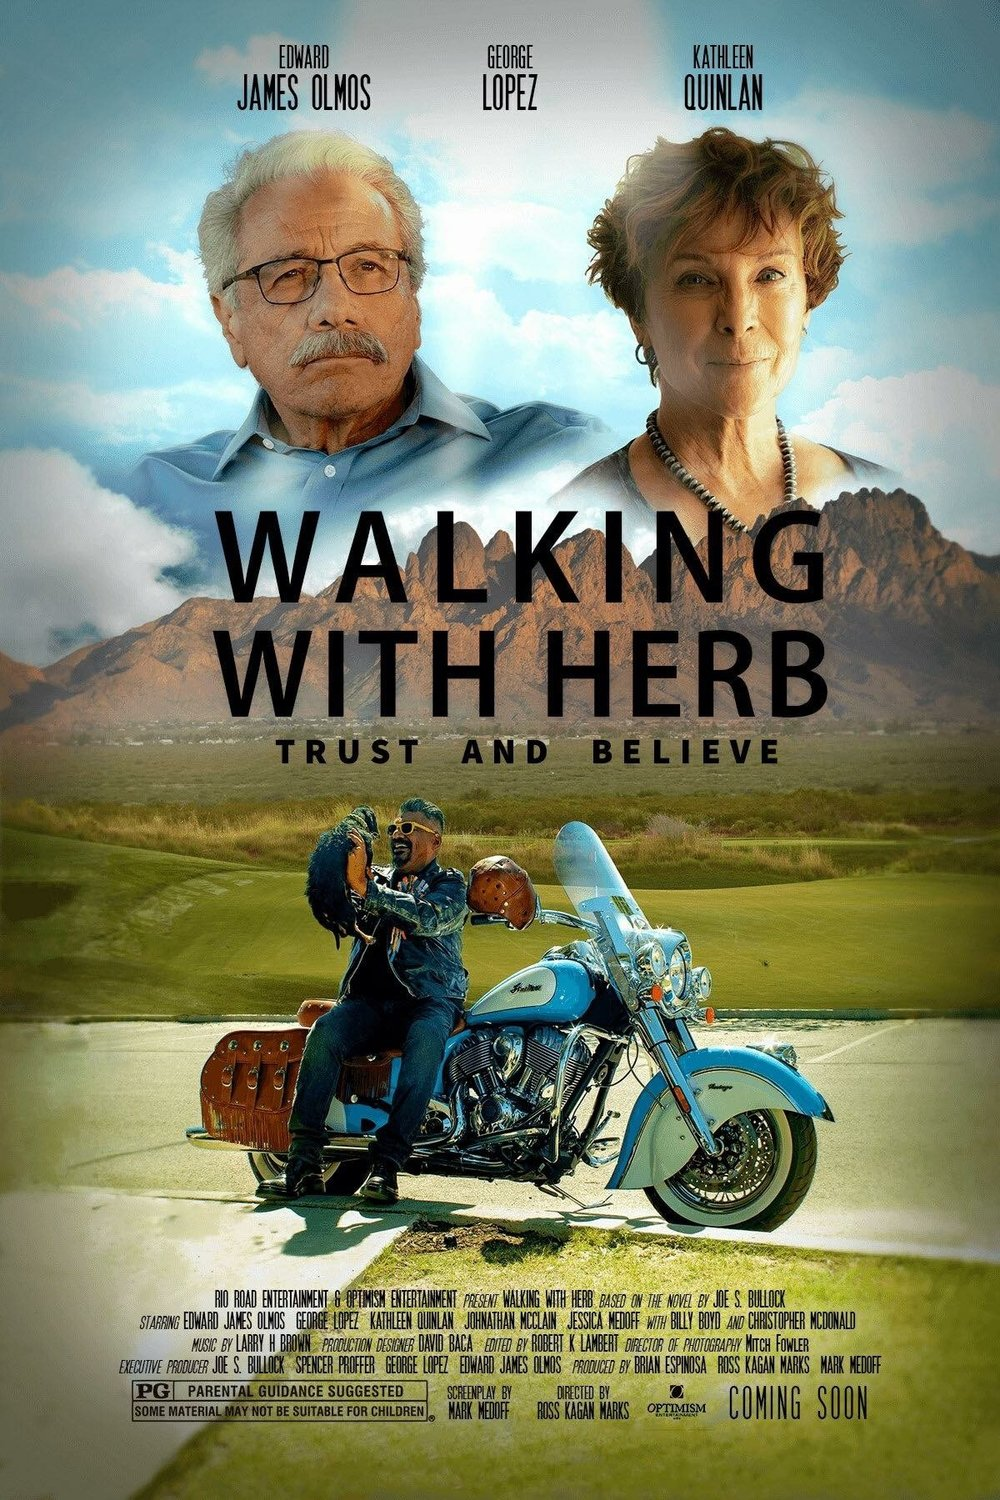 Walking with Herb promotional poster